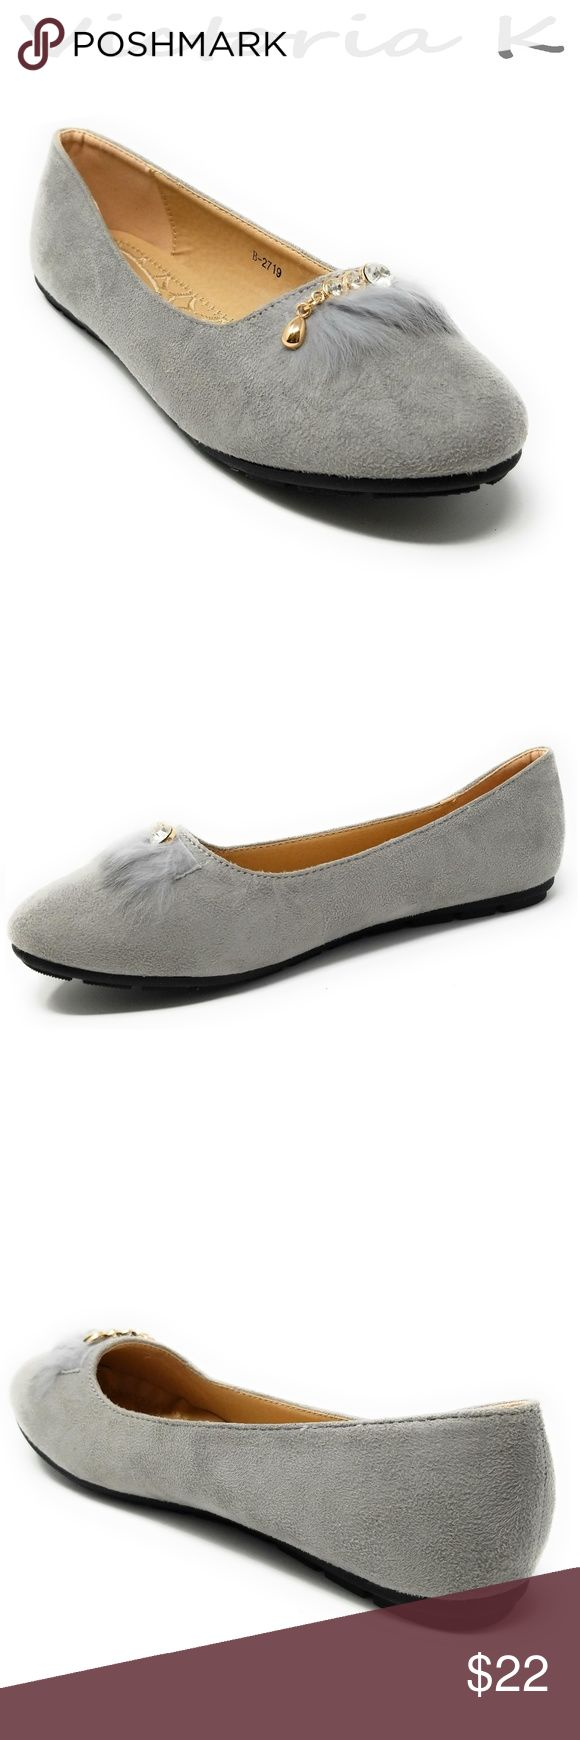 """Women Feather Embellished Buckle Flats, B2719 Gray Brand new woman beautiful flats with a feather embellished crystal studded buckle. Diligently crafted from glossy faux leather upper with extra soft insoles and a textured rubberized outer sole for traction.  Measurements: sizes 6 through 8 are true to size. Sizes 8.5 - 11 run small. Standard 3 """" width. Size 8 measures 9.5 inches, sz 8.5 - 9 3/4"""", sz 9 - 10"""", sz 10 - 10.5"""", size 11 fits a true size 9.5 wearer. Slip it on and make a true…"""